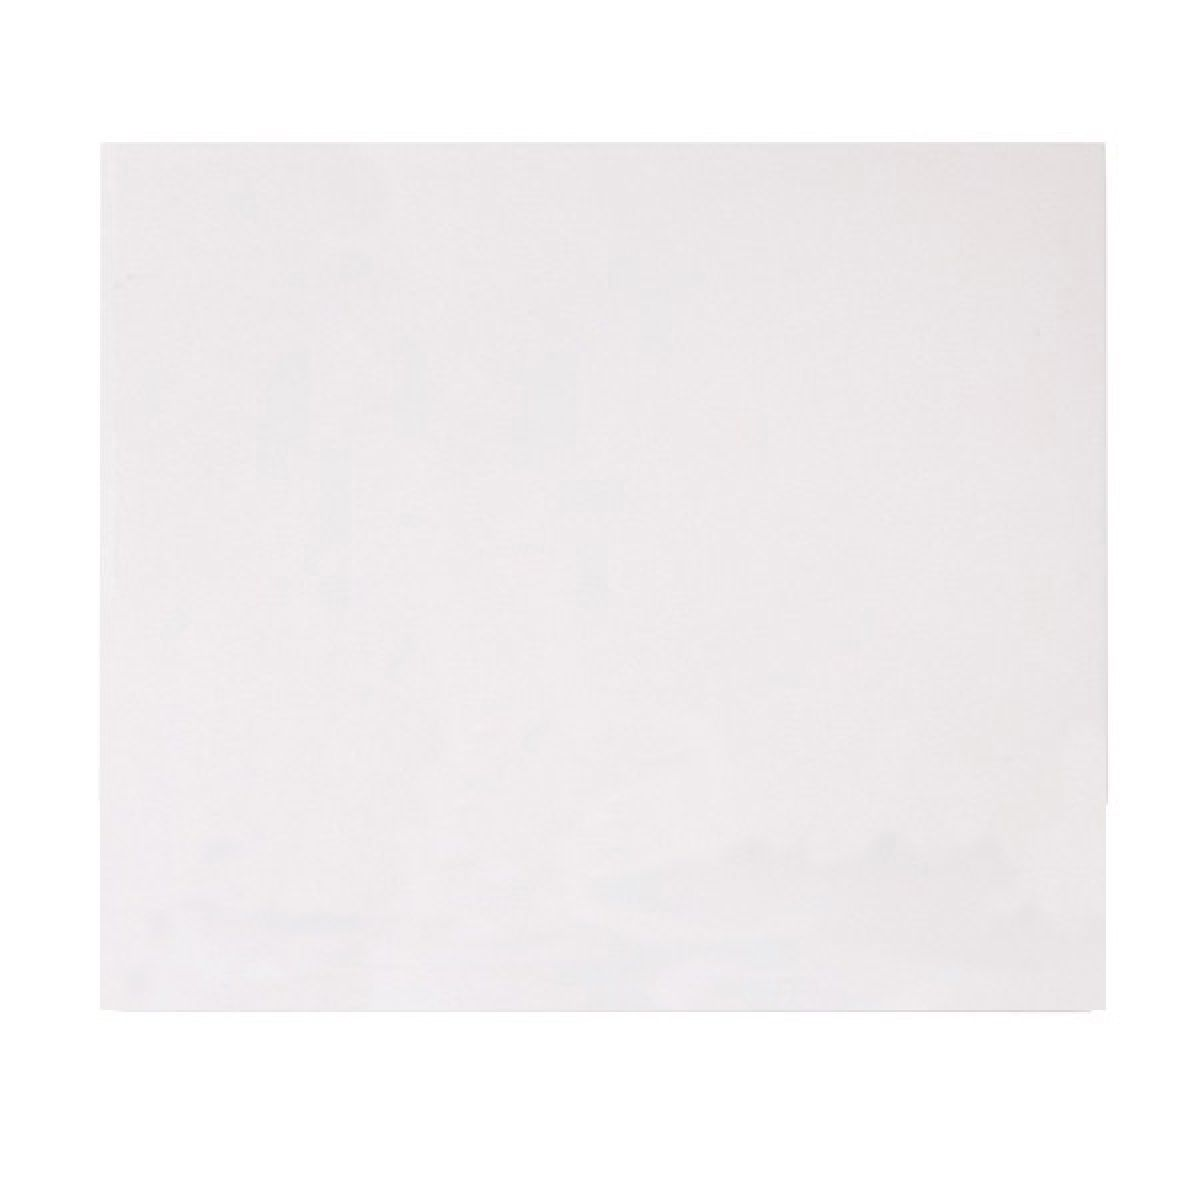 Frontline Superstyle White Bath End Panel 750mm